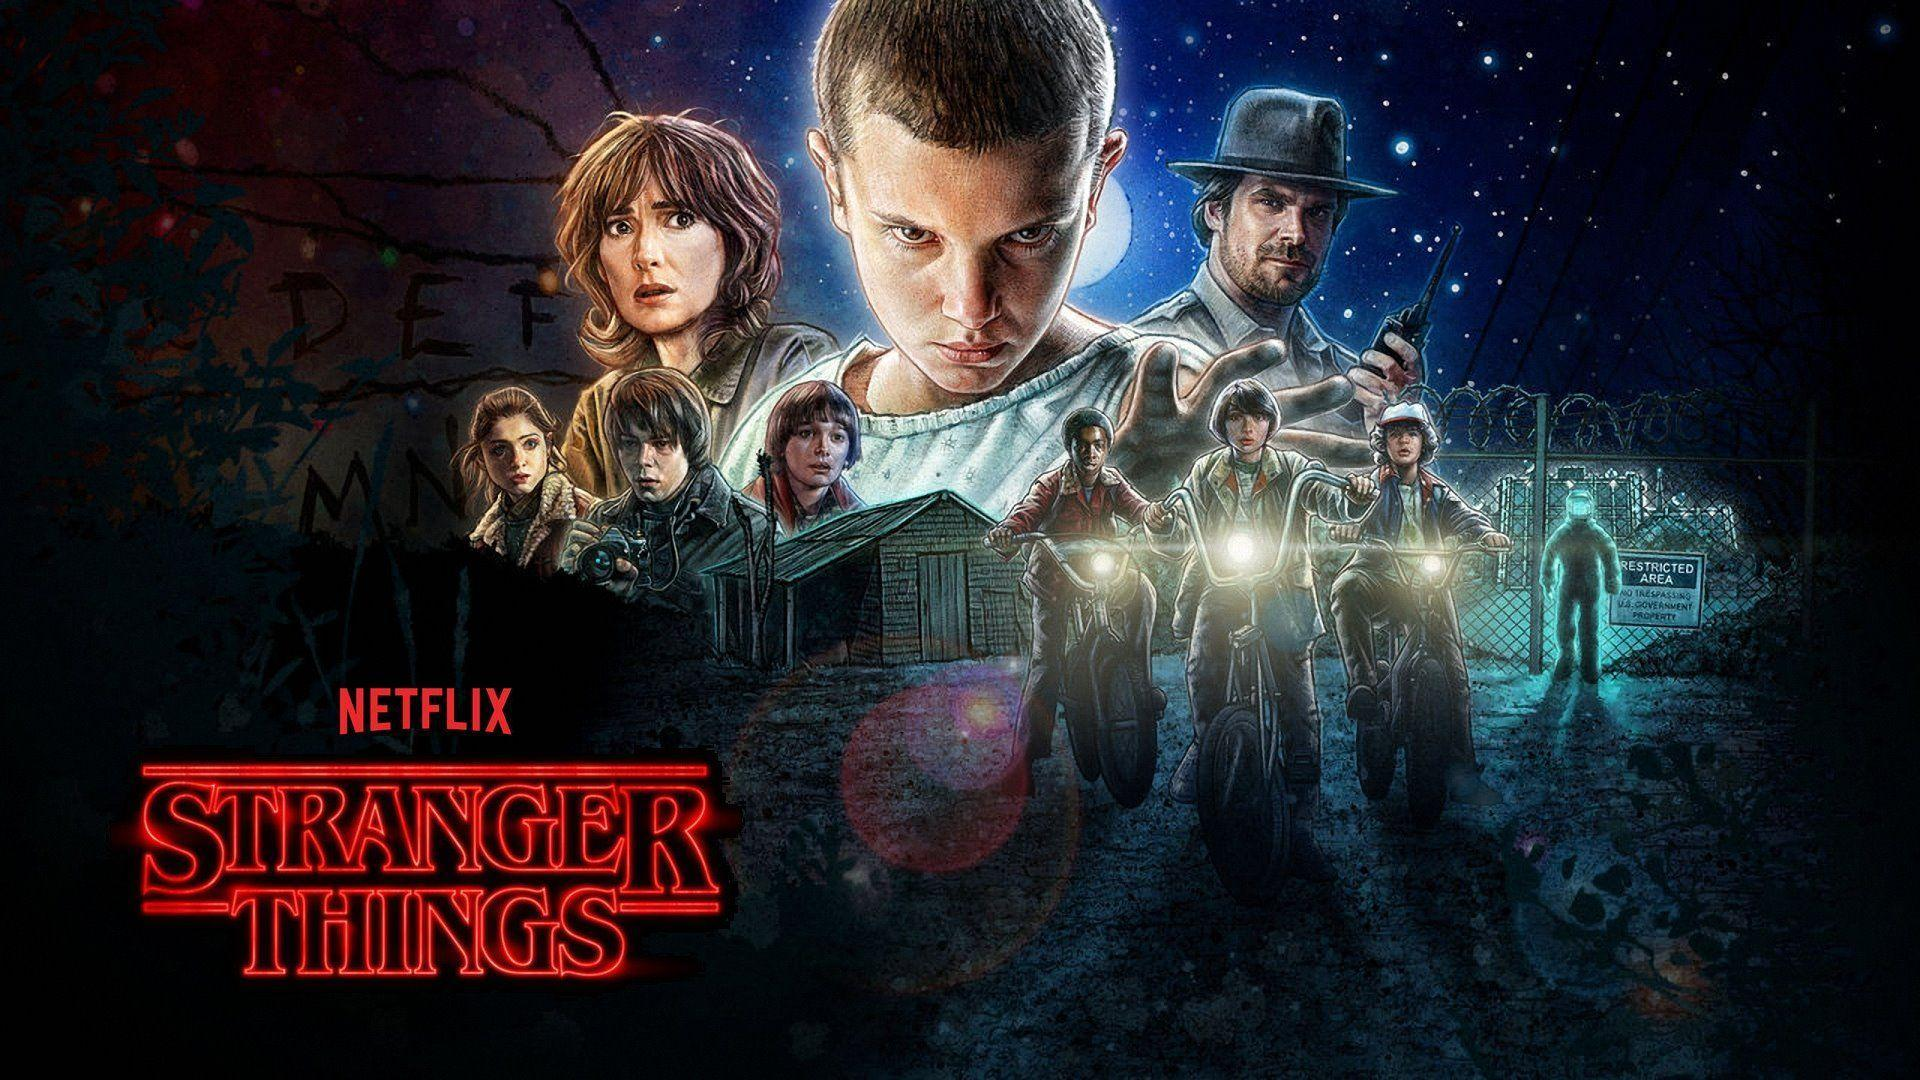 Stranger Things Wallpapers 1920x1080